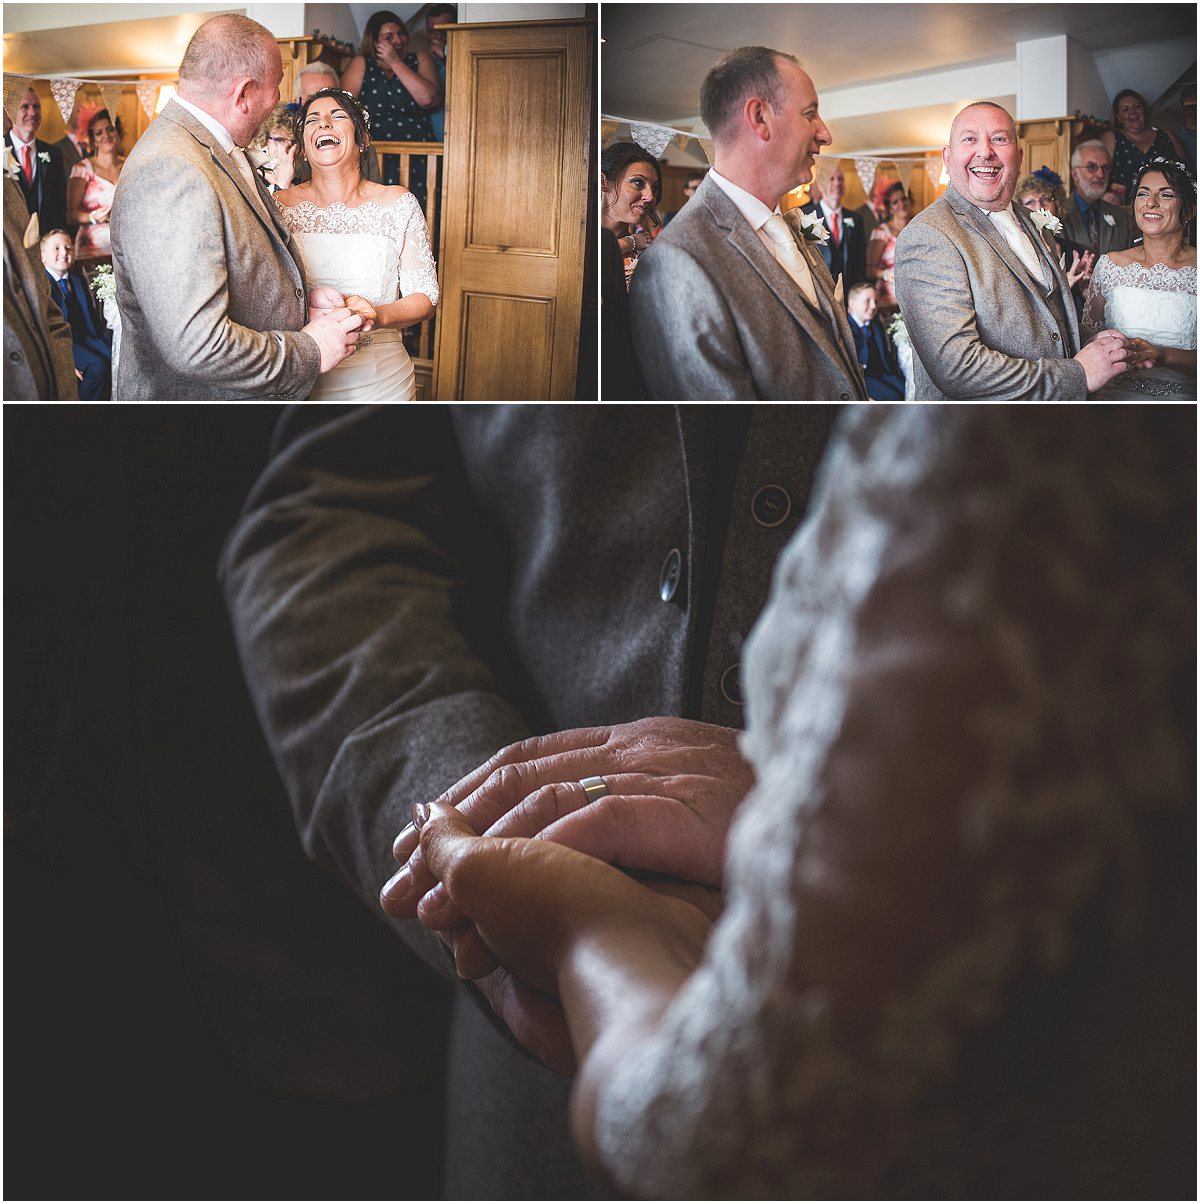 Wedding Ceremony at Low Wood Hall Hotel, Wast Water Wedding Photography